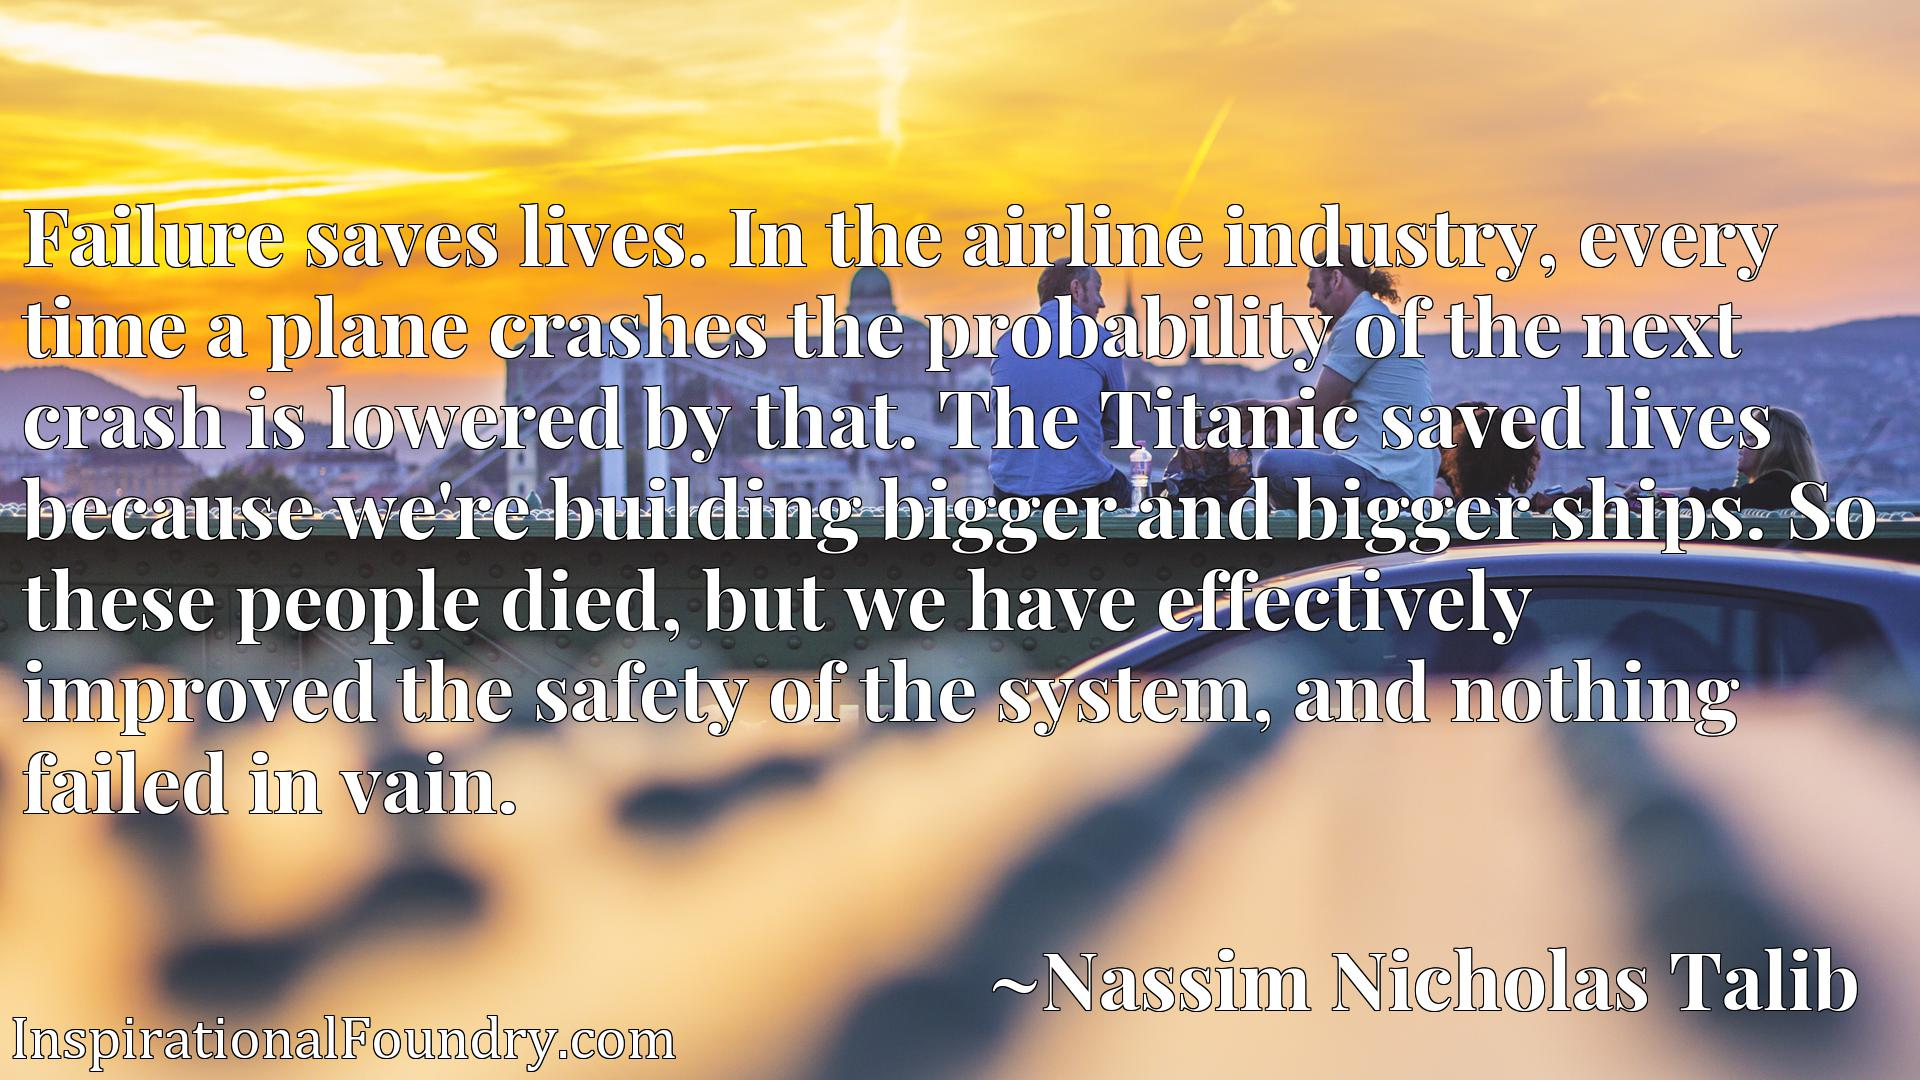 Failure saves lives. In the airline industry, every time a plane crashes the probability of the next crash is lowered by that. The Titanic saved lives because we're building bigger and bigger ships. So these people died, but we have effectively improved the safety of the system, and nothing failed in vain.